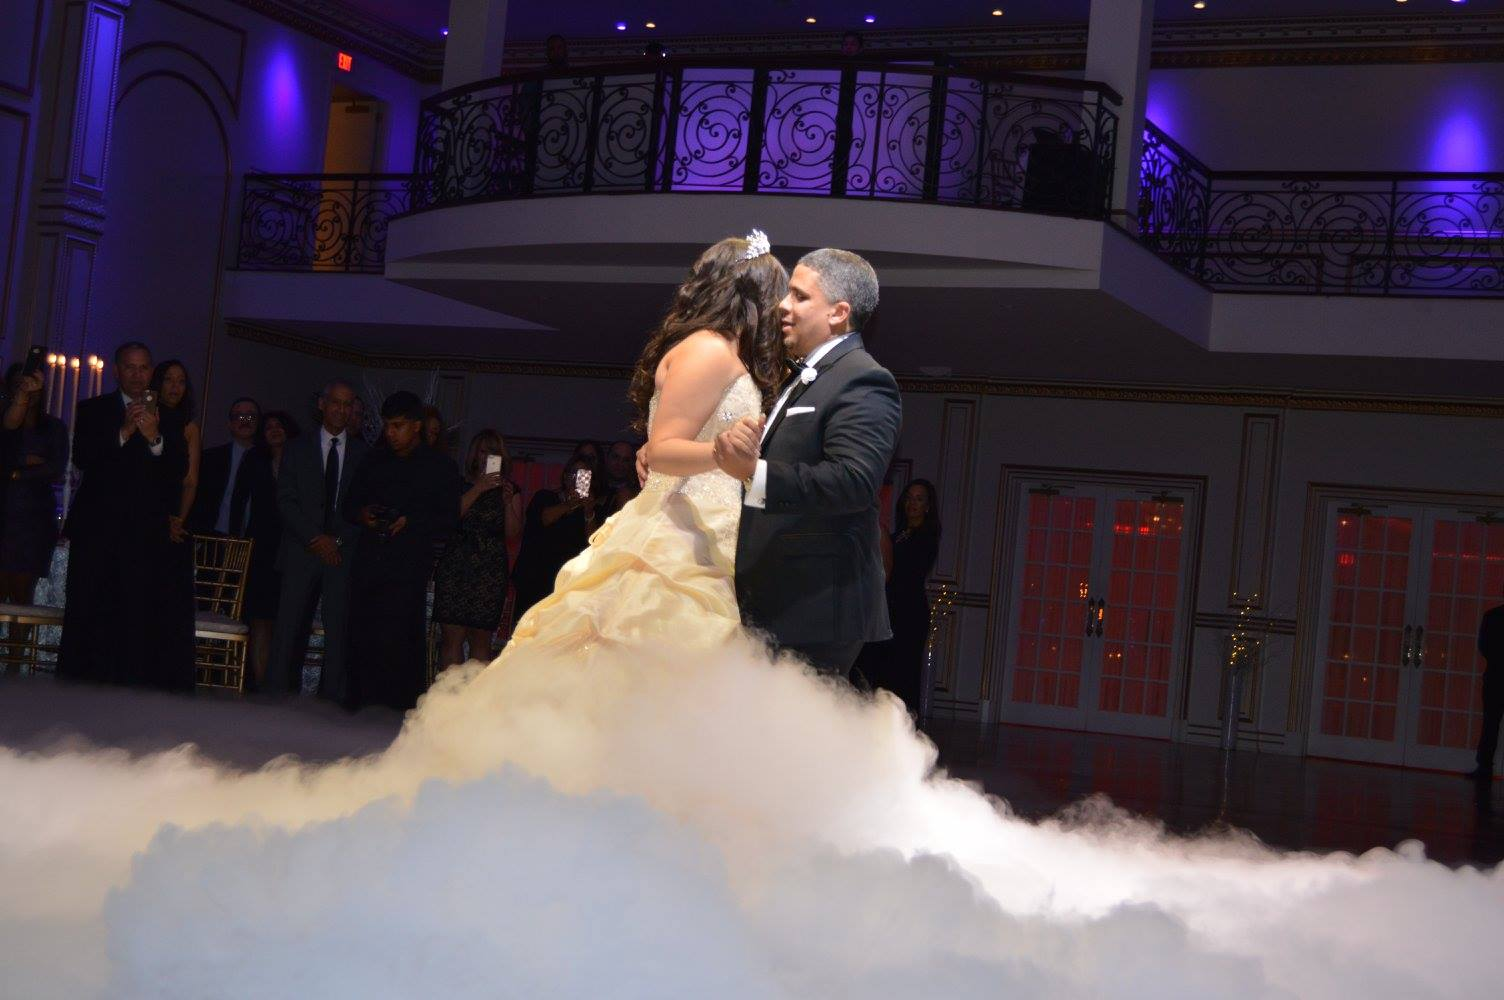 DANCE ON CLOUDS  This popular effect provides the illusion of dancing on clouds. It is safe, approved at most venues and will transform your dance floor into a magical dance scene.